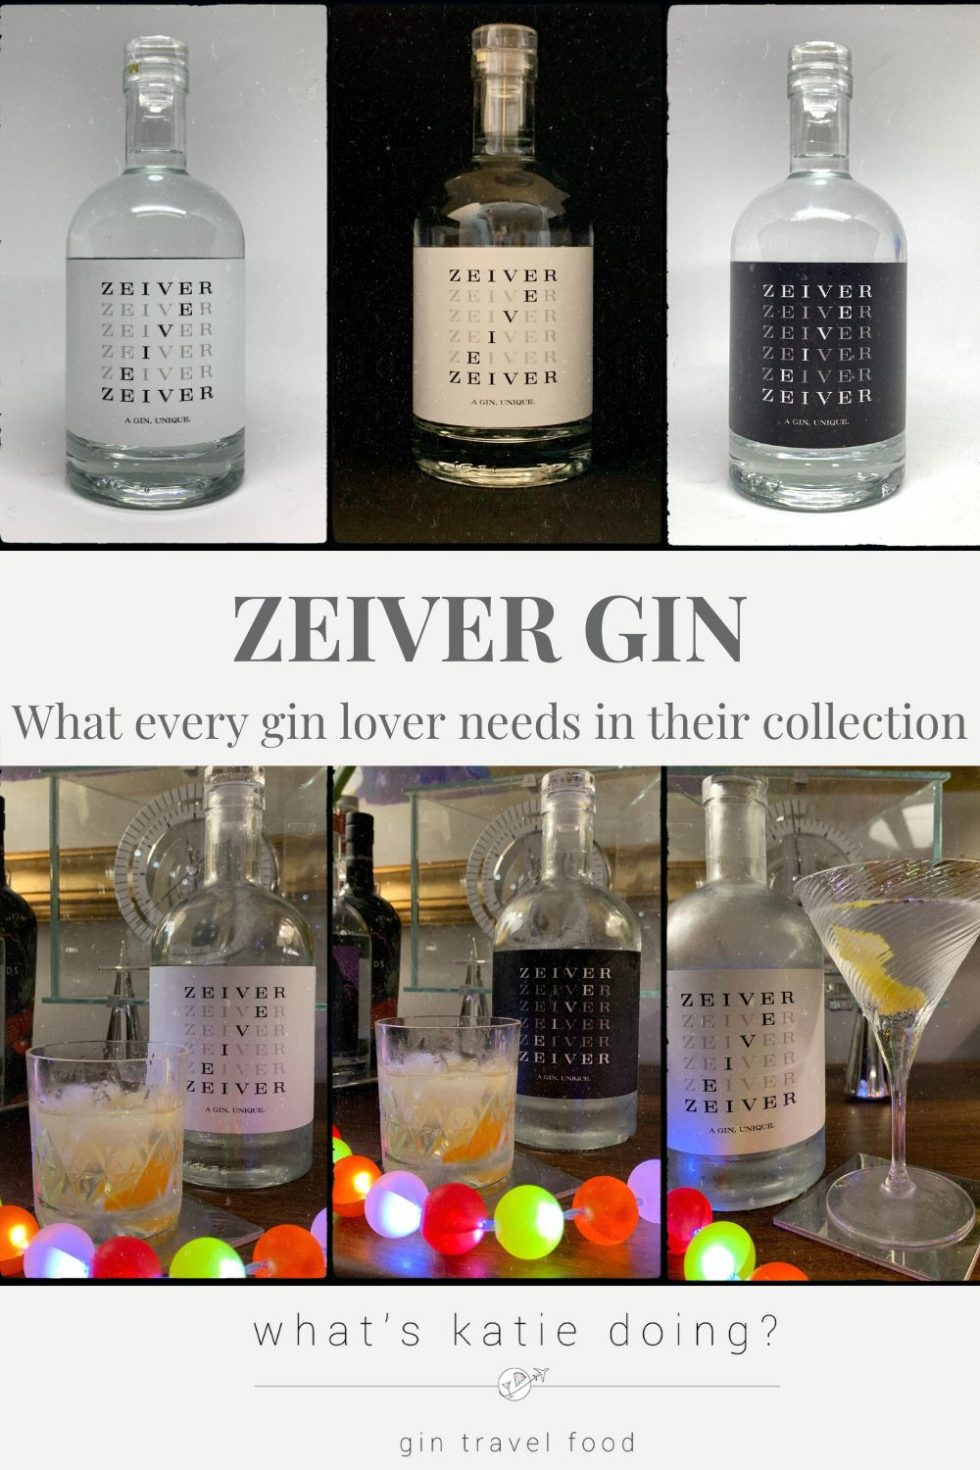 Zeiver gin - what every gin lover needs in their collection